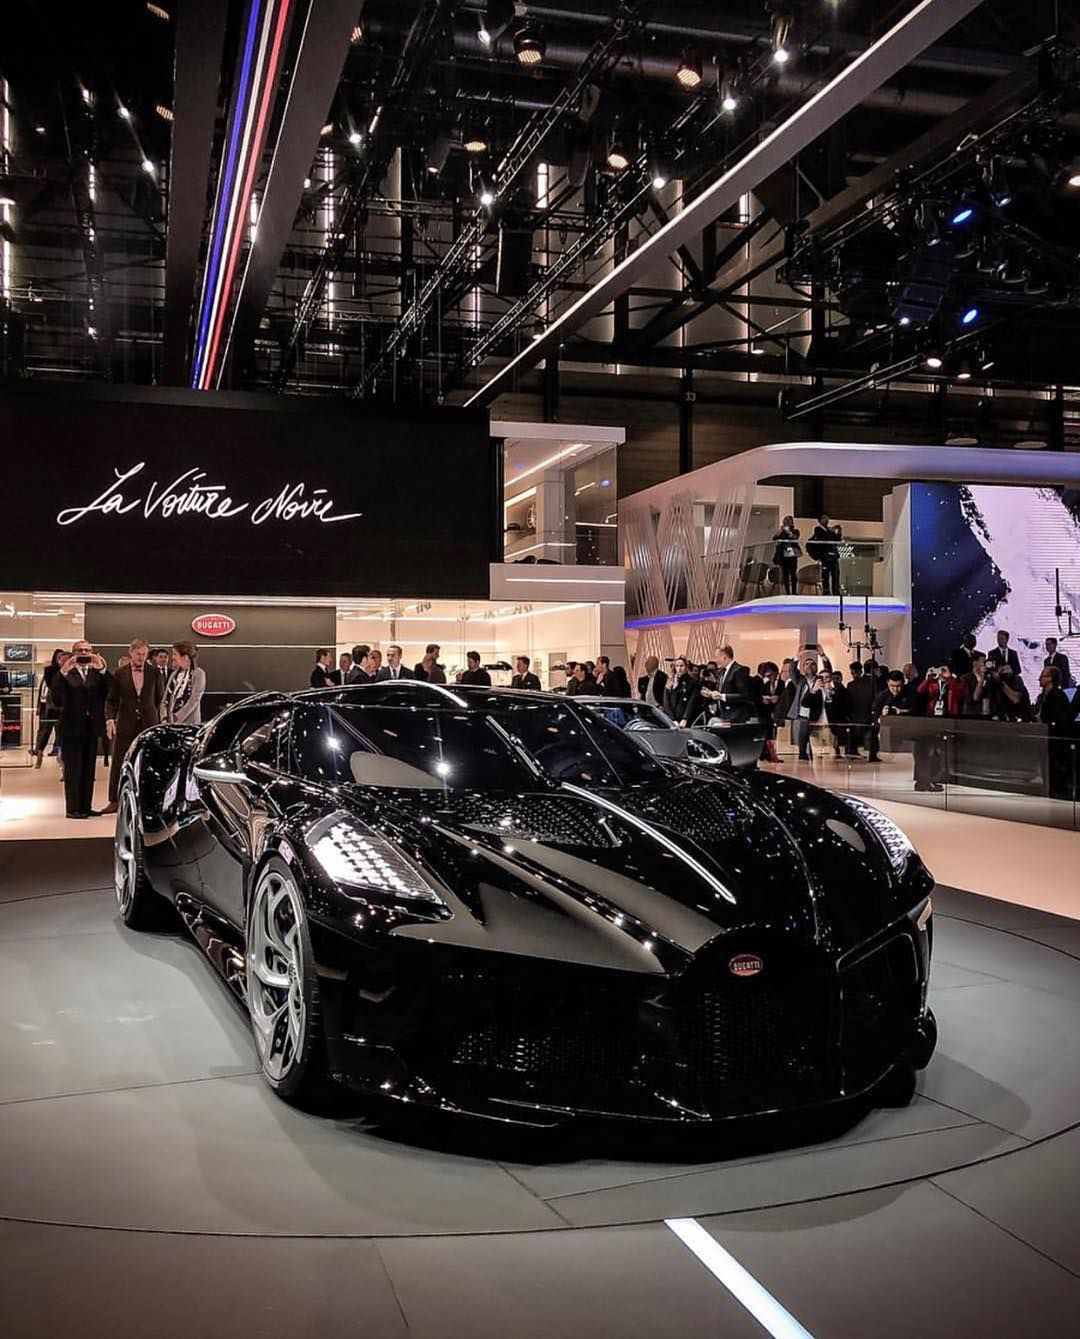 Arabmoney Official On Instagram The All New Bugatti La Voiture Noire 1of1 The Most Expensive New Car In The World With A Bugatti Cars Sports Car Bugatti